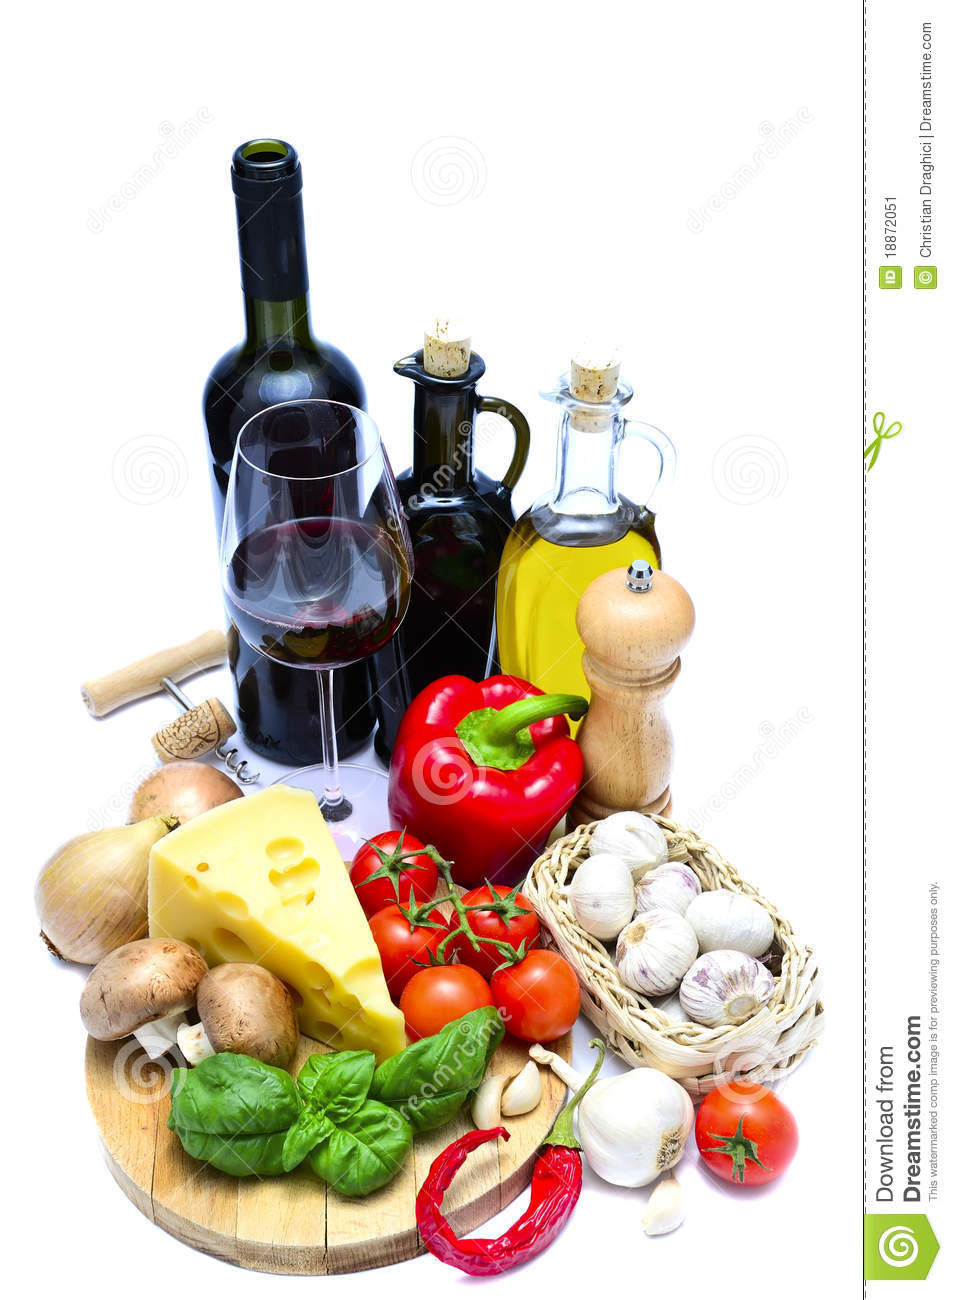 Healthy food and wine